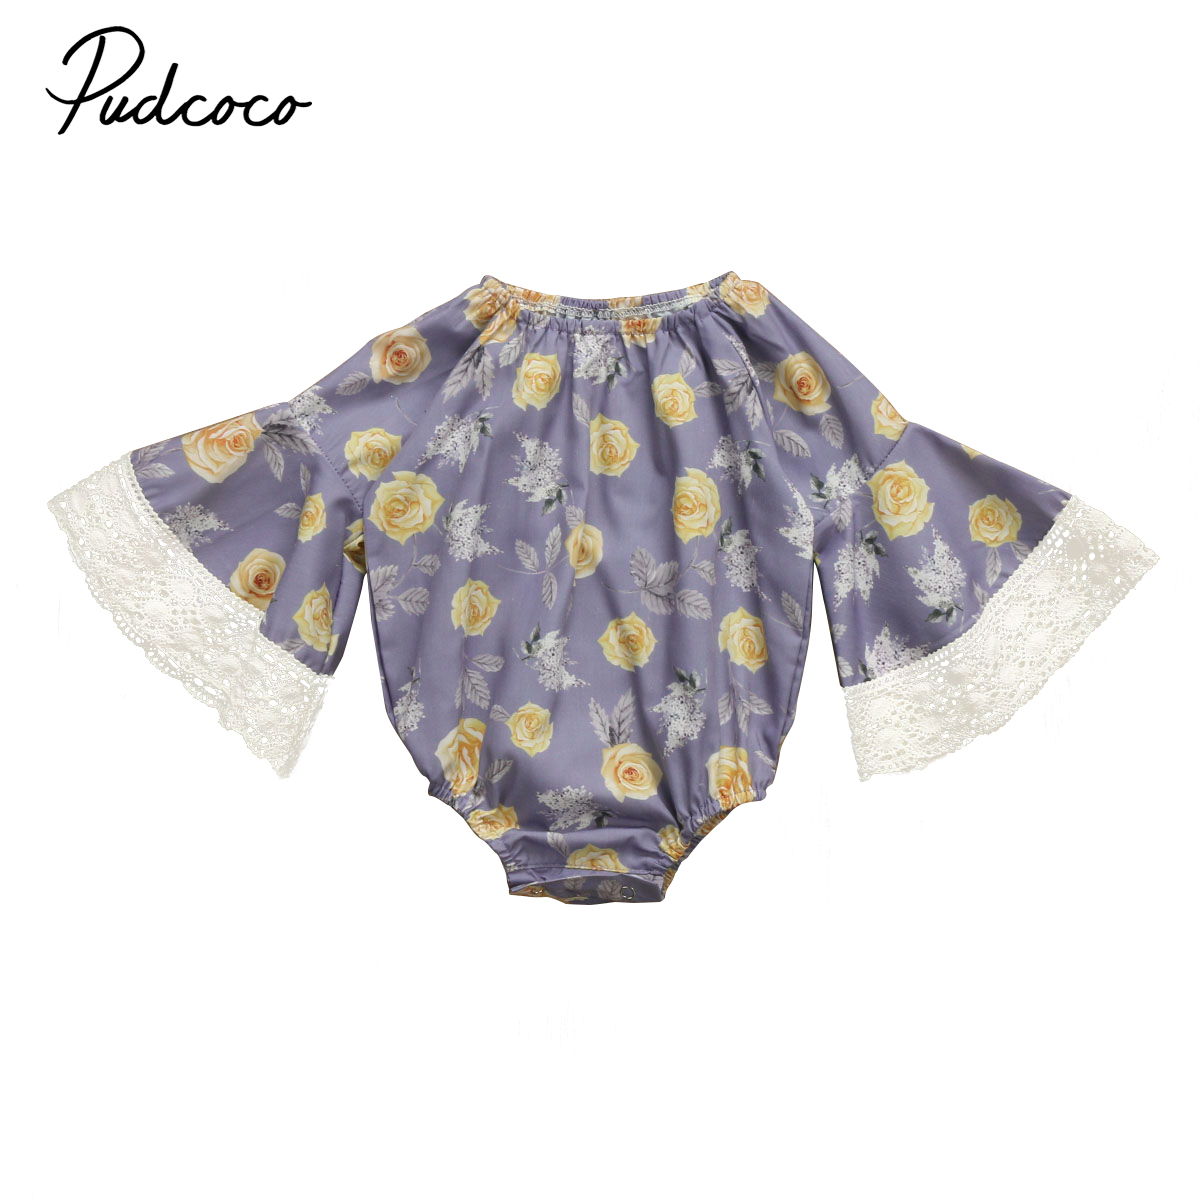 Pudcoco Newborn Kids Baby Girl Lace Flare Sleeve Floral Romper Jumpsuit Clothes Fall Winter Cotton One-Piece Outfit pudcoco newborn baby girl clothes 2017 summer sleeveless floral romper backless jumpsuit sunsuit children clothes